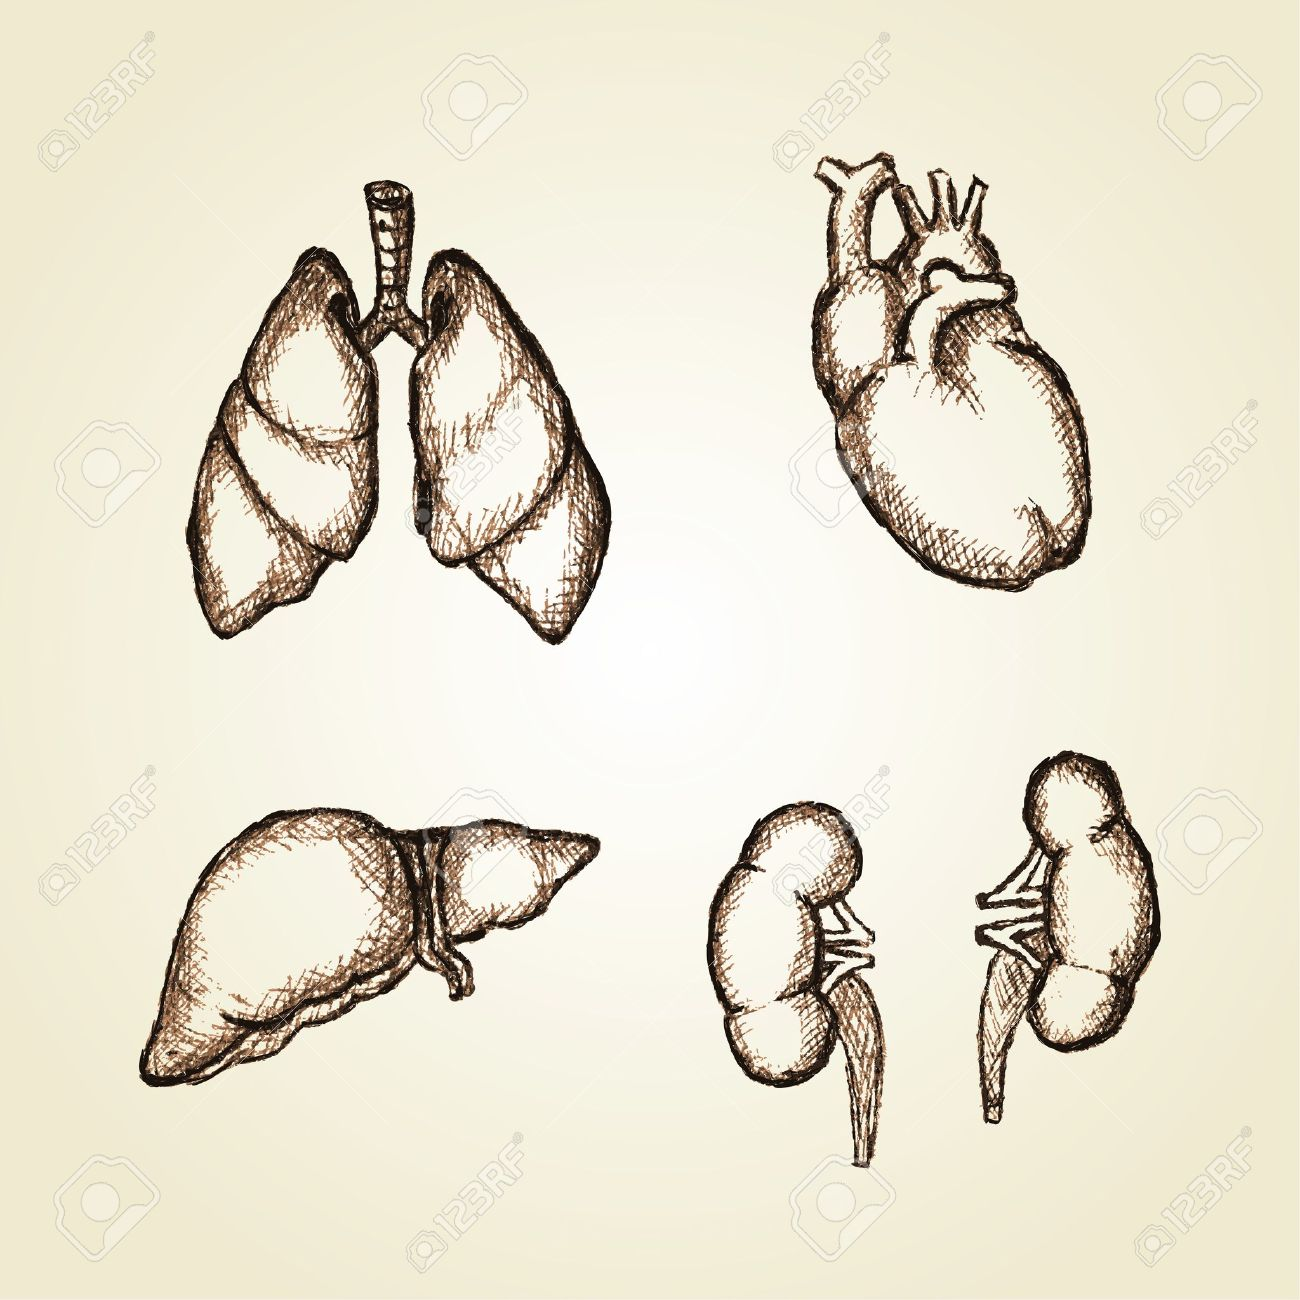 1300x1300 Sketching Illustration Of Organs Heart, Lungs, Liver And Kidney